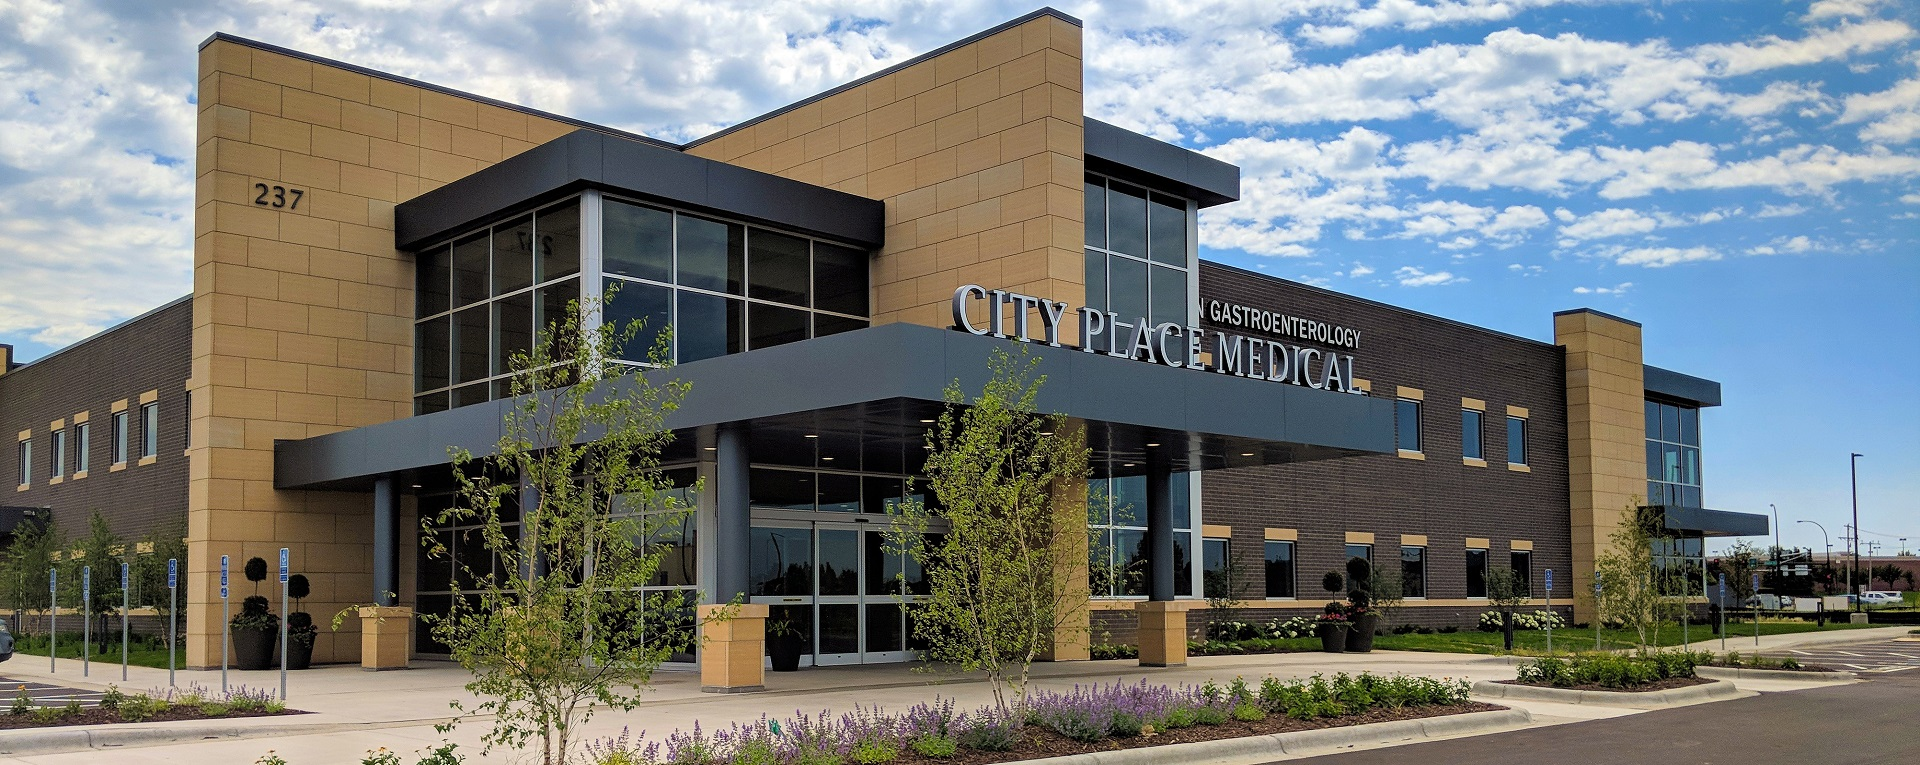 Exterior City Place Medical